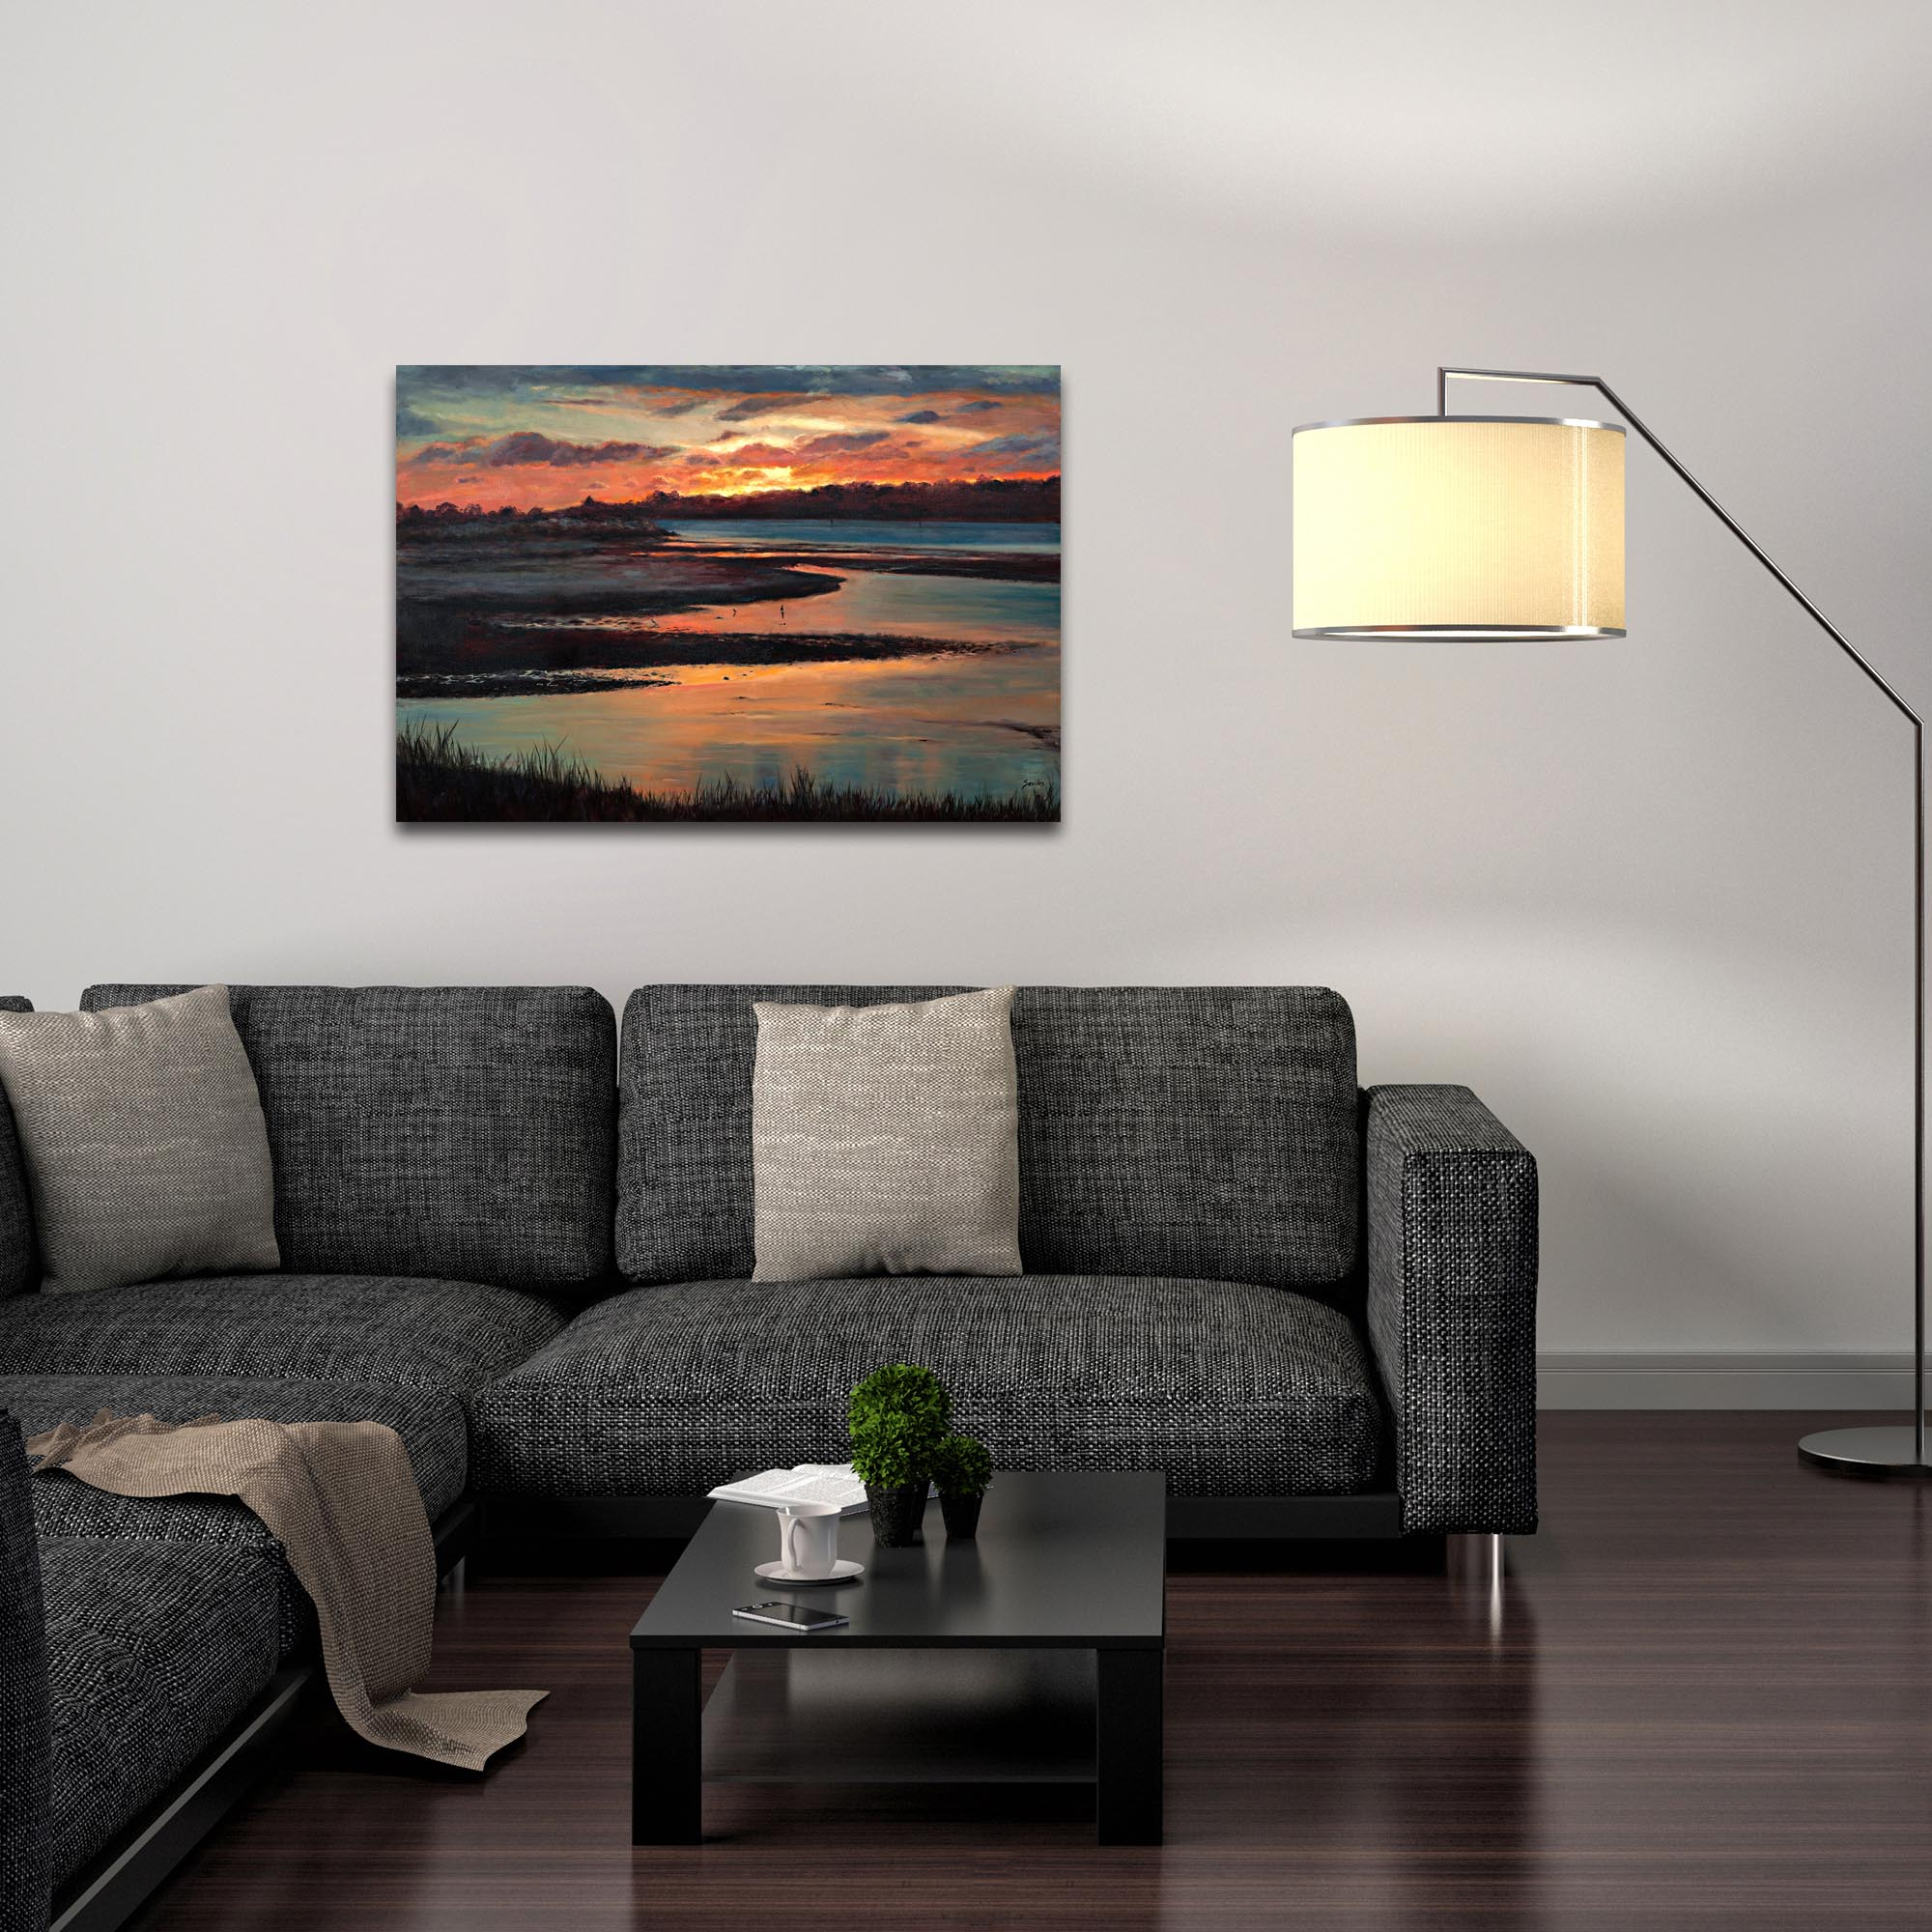 Traditional Wall Art 'Sunset' - River Landscape Decor on Metal or Plexiglass - Lifestyle View